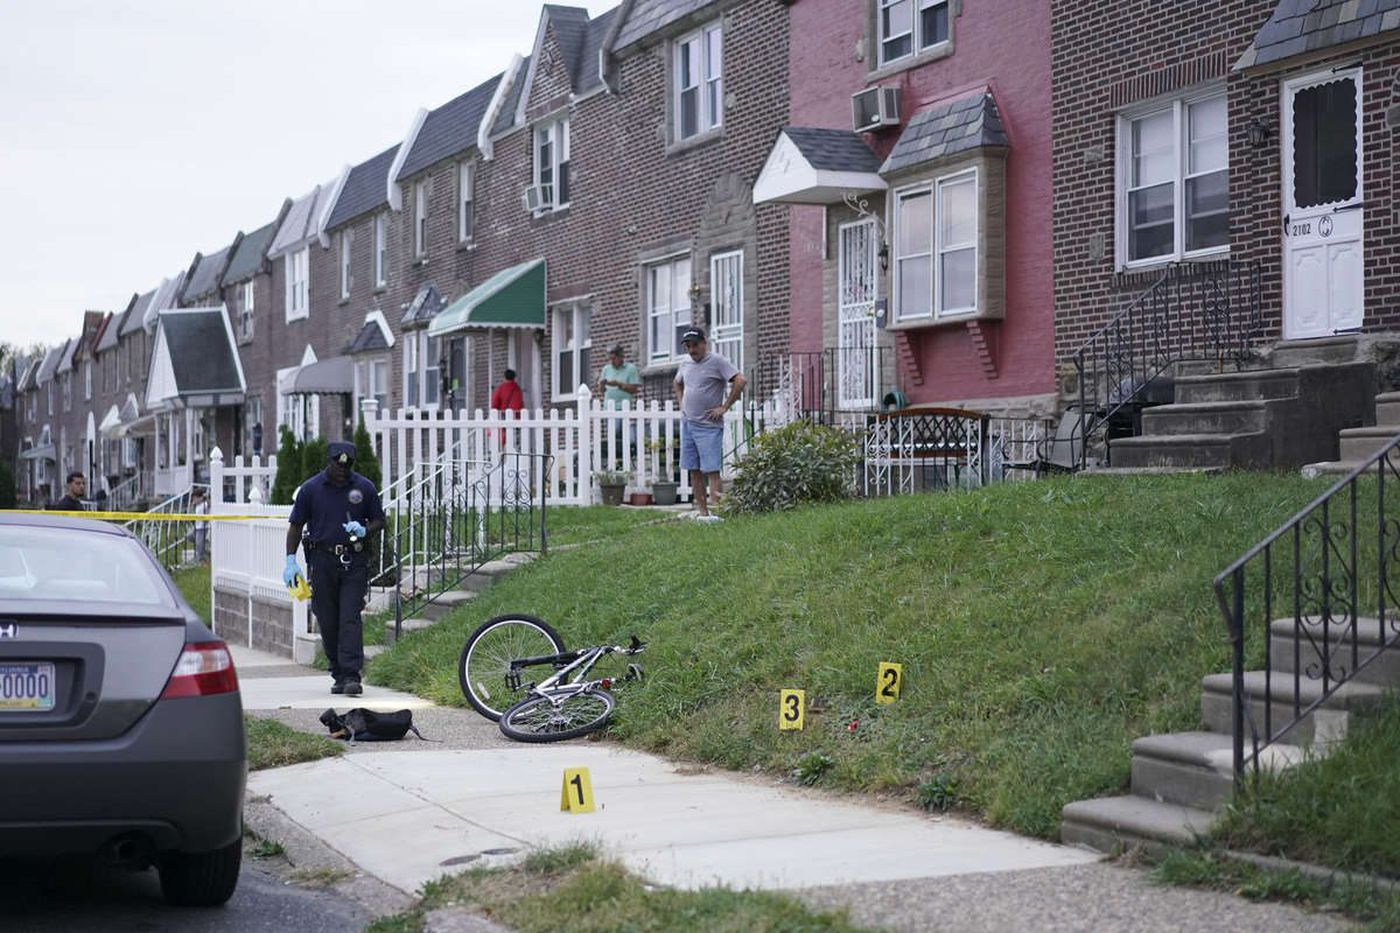 Philly teen dies after being shot in Oxford Circle student melee